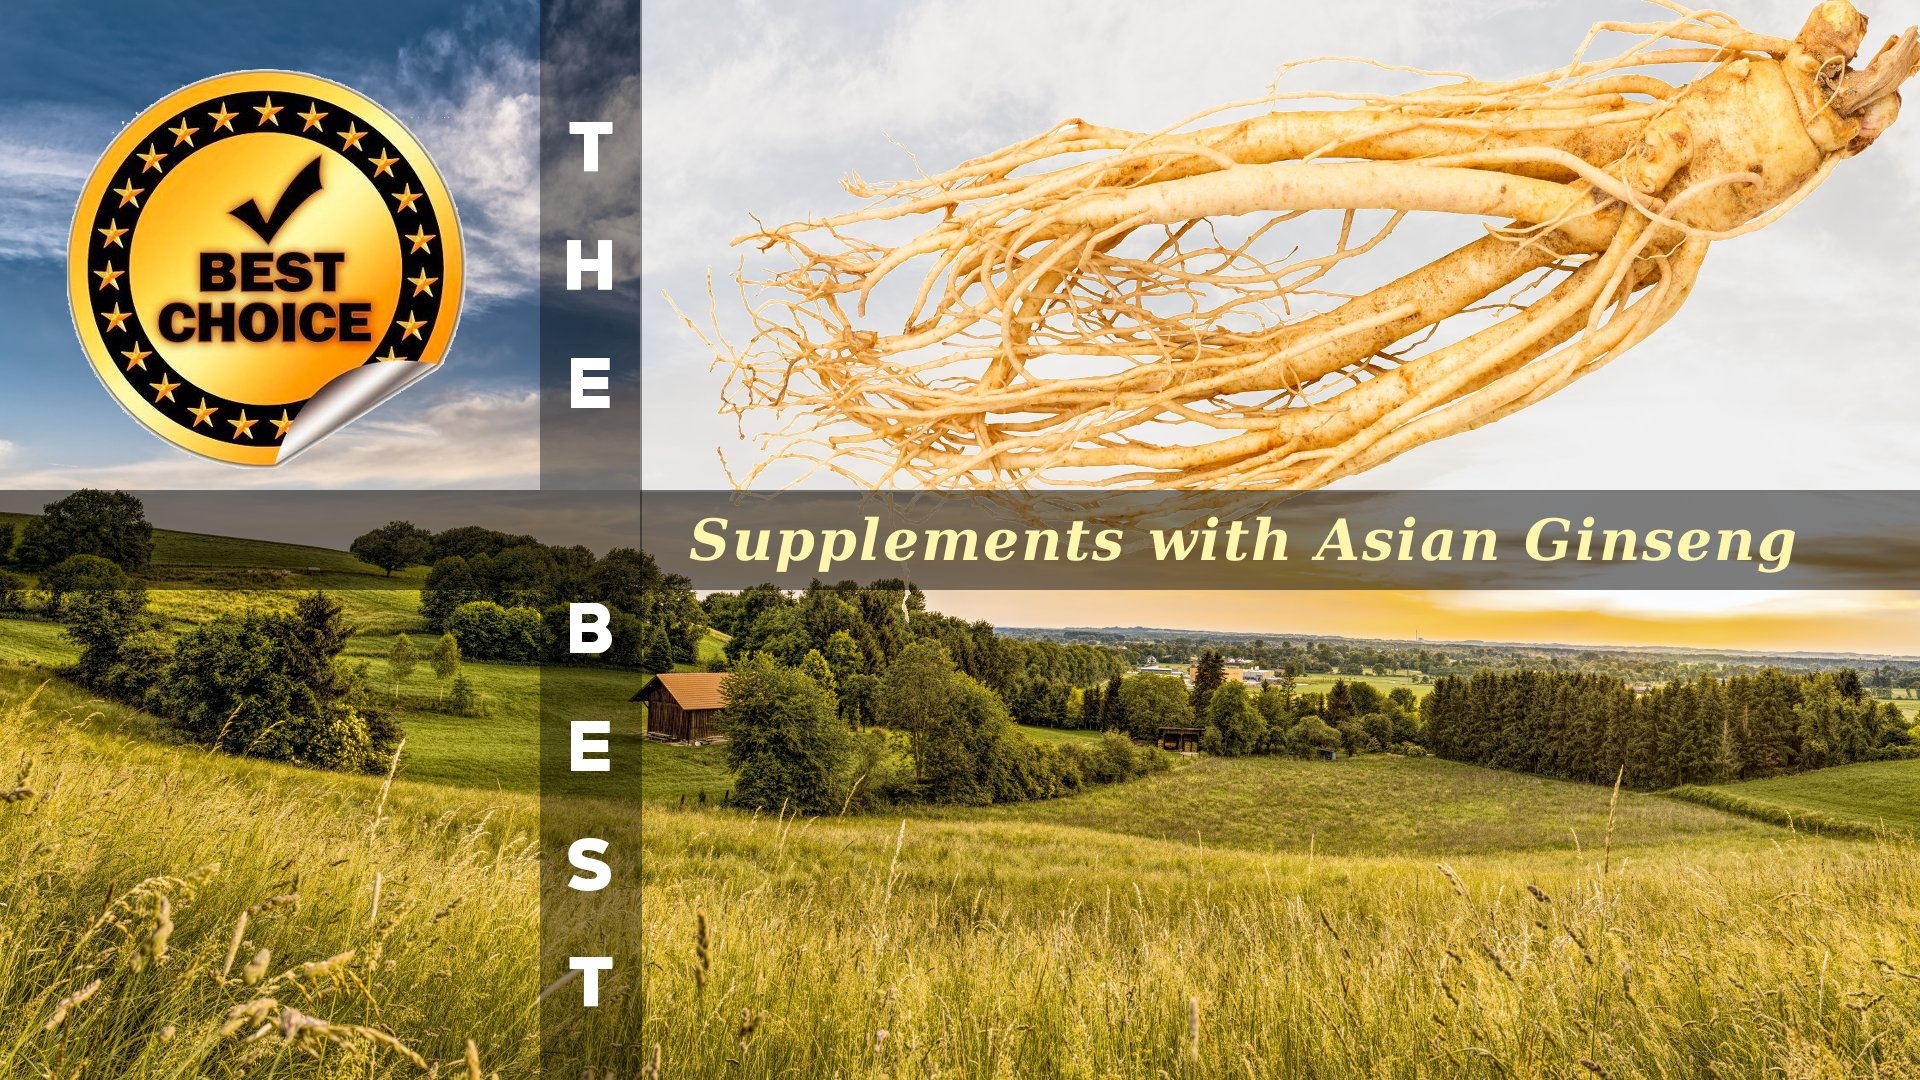 The Supplements with Asian Ginseng